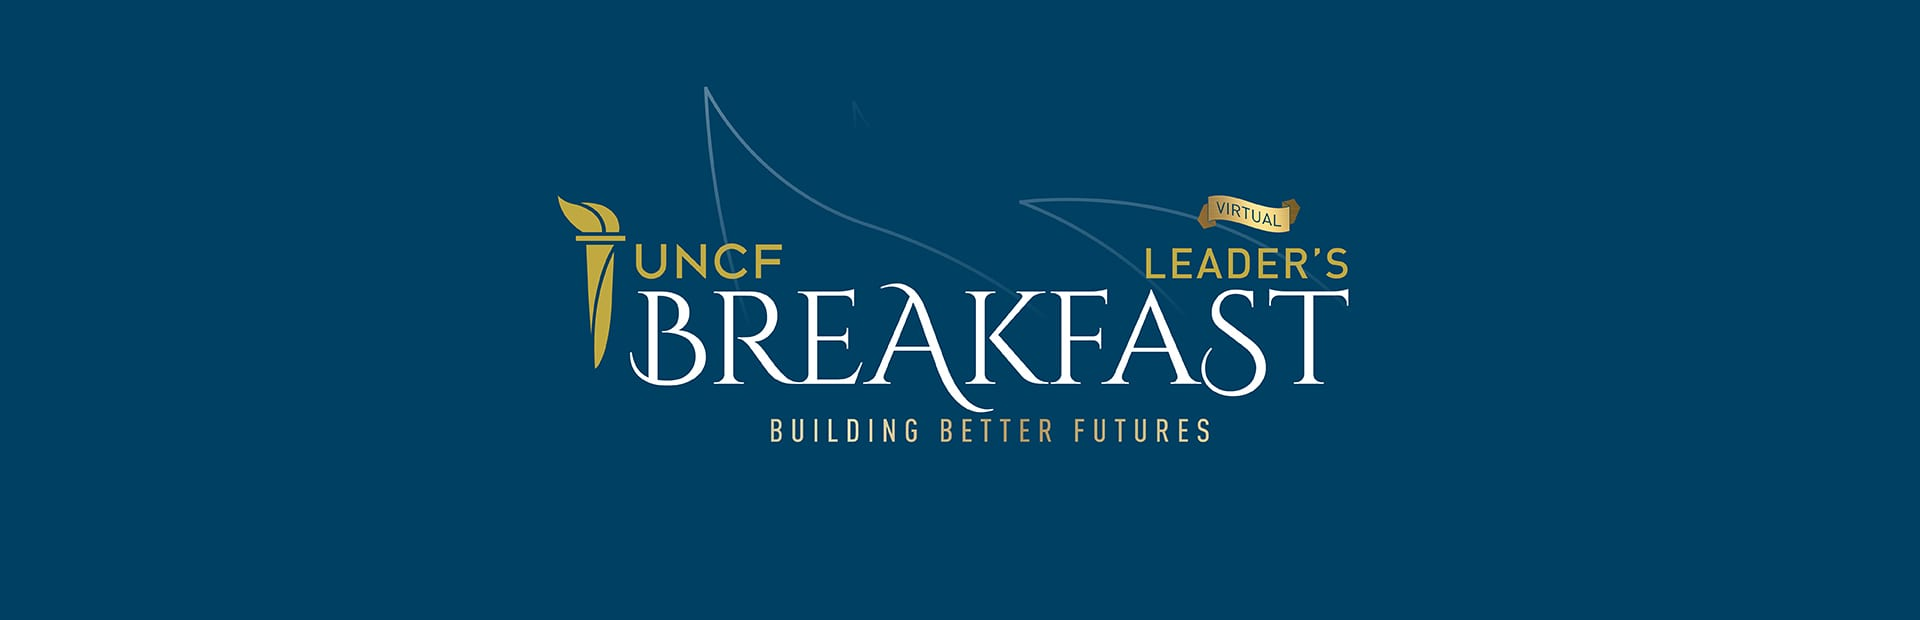 virtual leaders luncheon banner